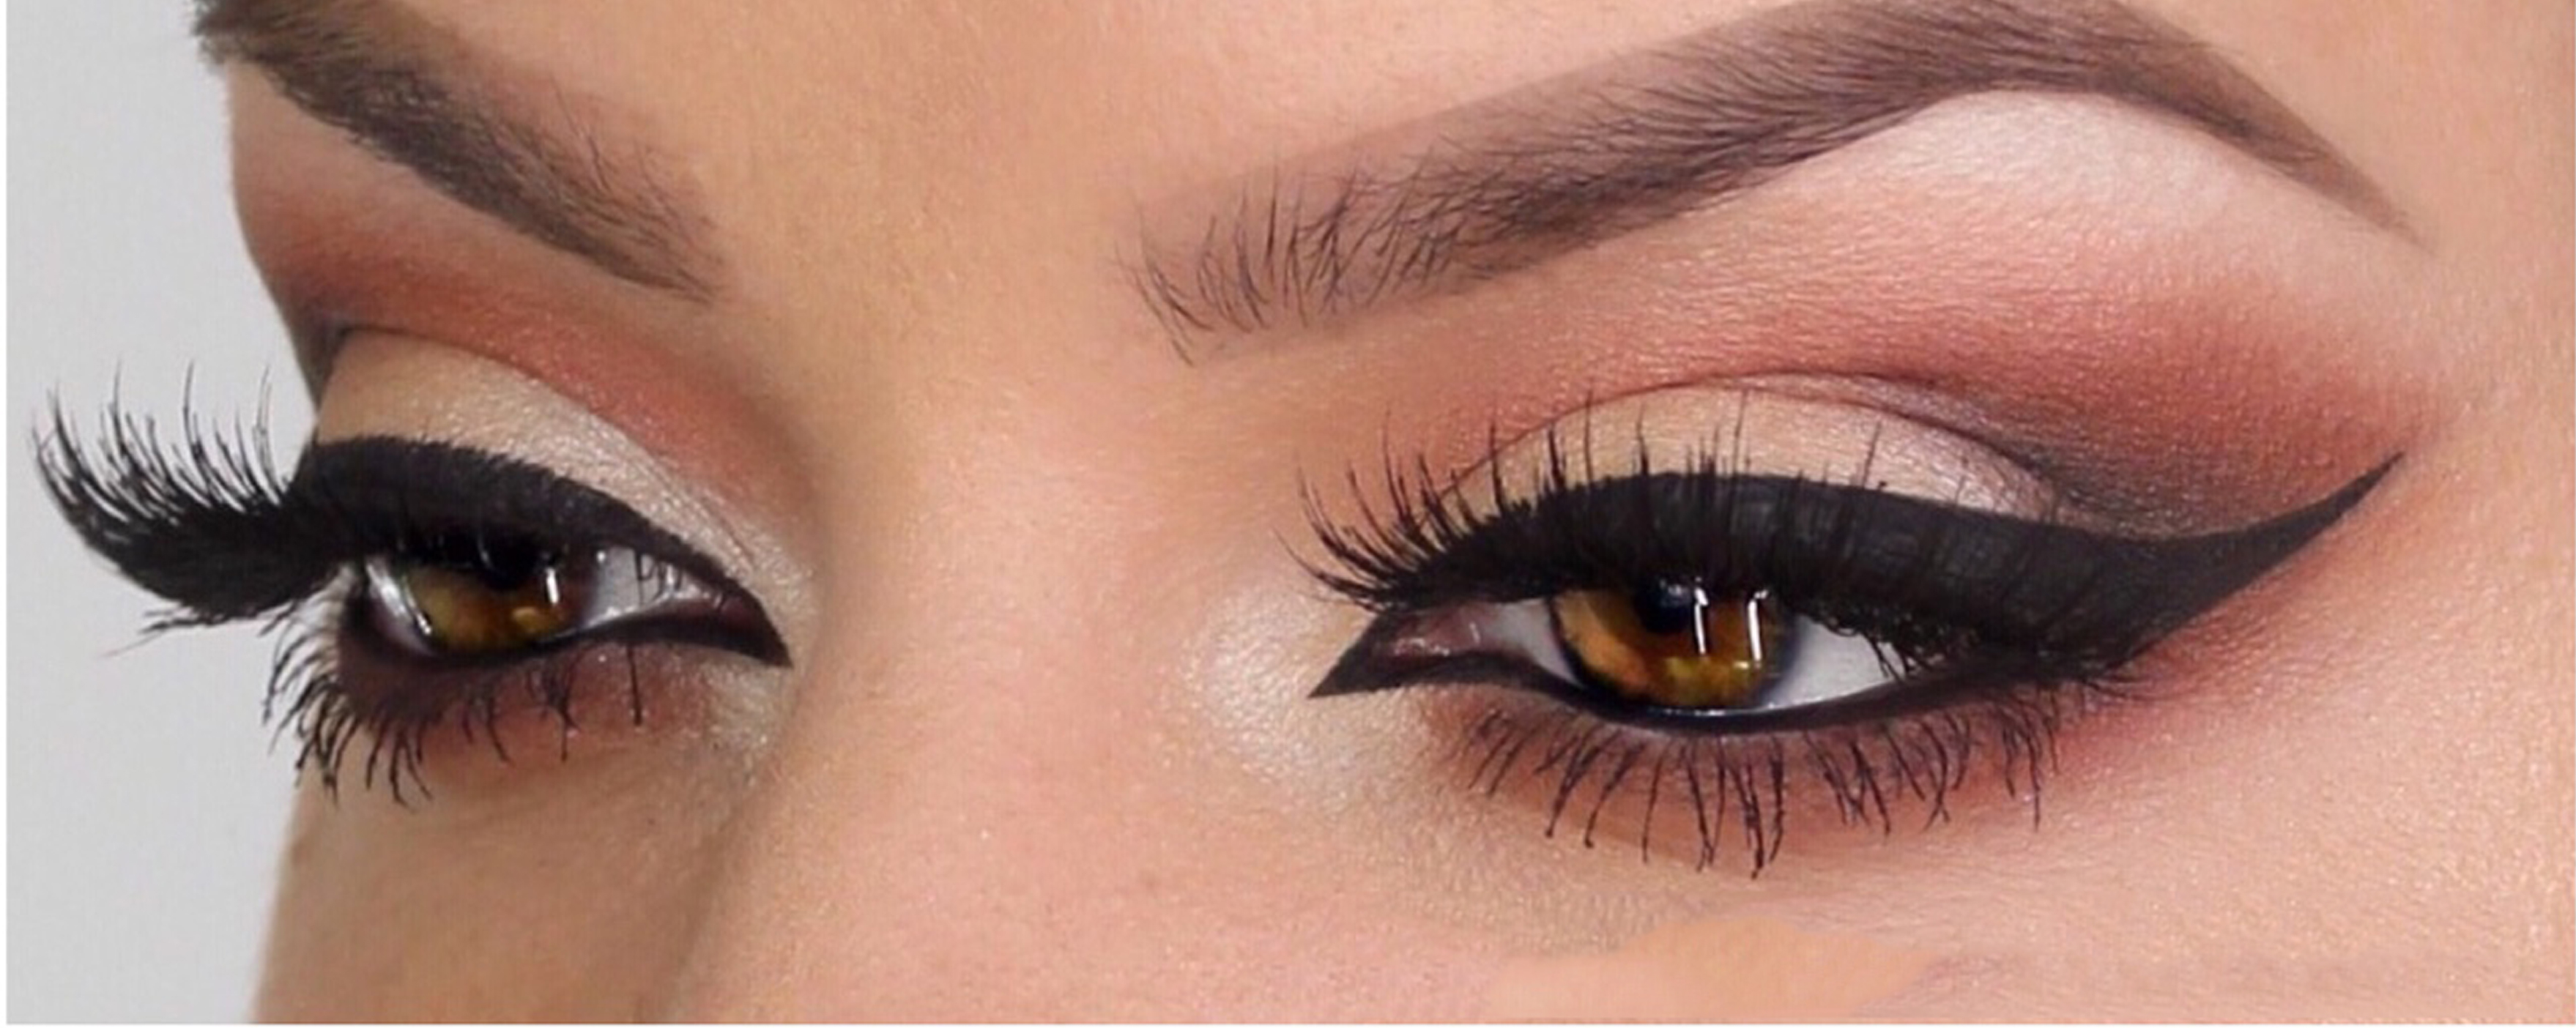 How to apply Liquid Eyeliner like a Pro